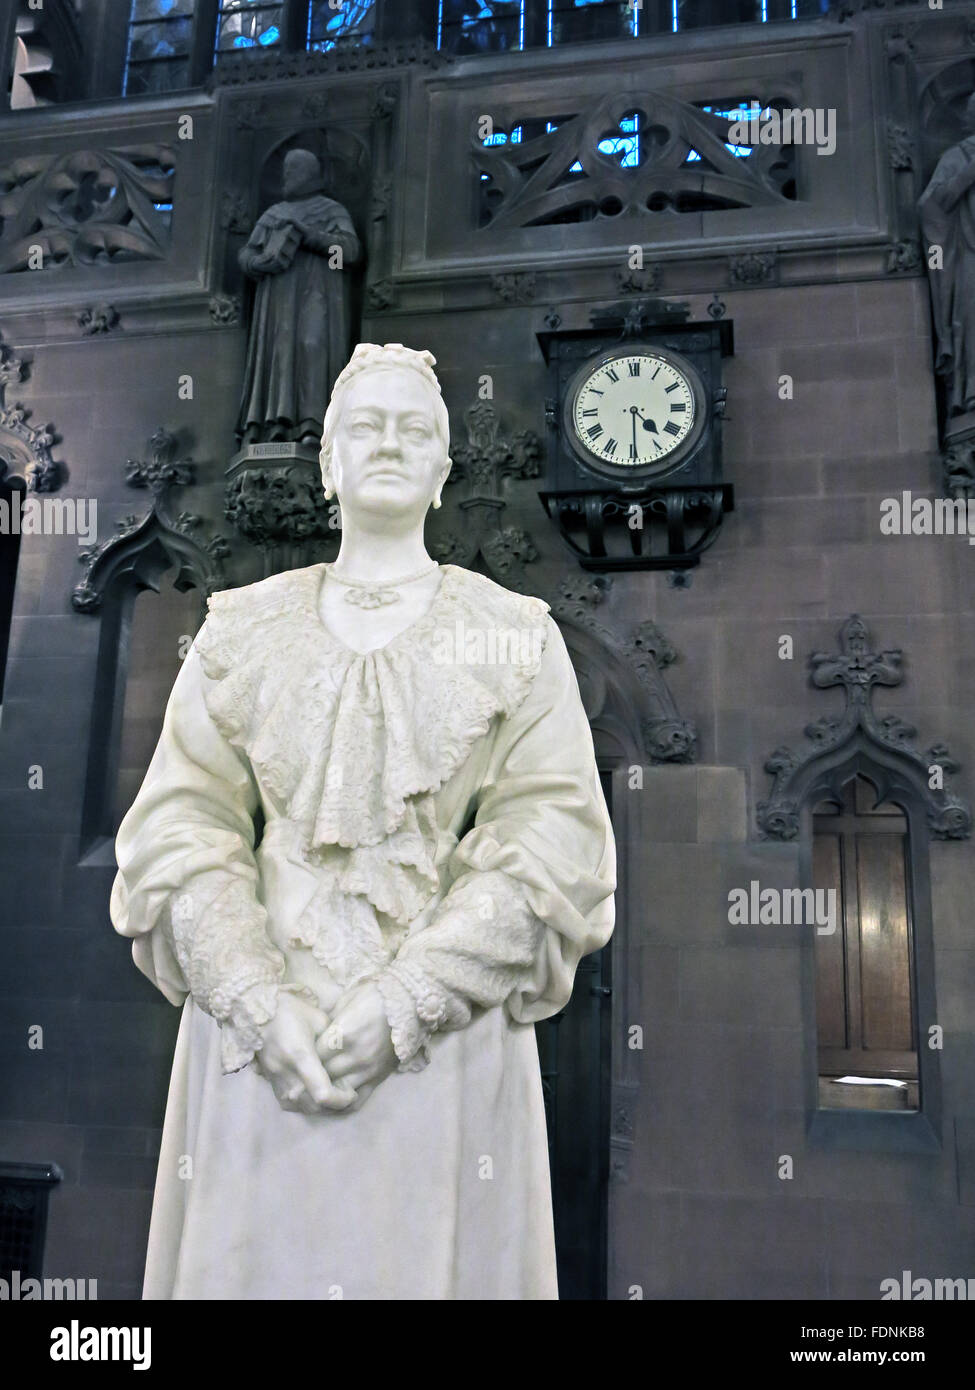 150,Deansgate,Manchester,England,UK,book,books,libraries,learn,learning,learned,learned,Victorian,University,of,Enriqueta,Augustina,Rylands,(1907) statue,founder,benefactor,sculptor,John,Cassidy,marble,art,artwork,artworks,M3 3EH,University Of Manchester,John Cassidy,GoTonySmith,@HotpixUK,Buy Pictures of,Buy Images Of,Images of,Stock Images